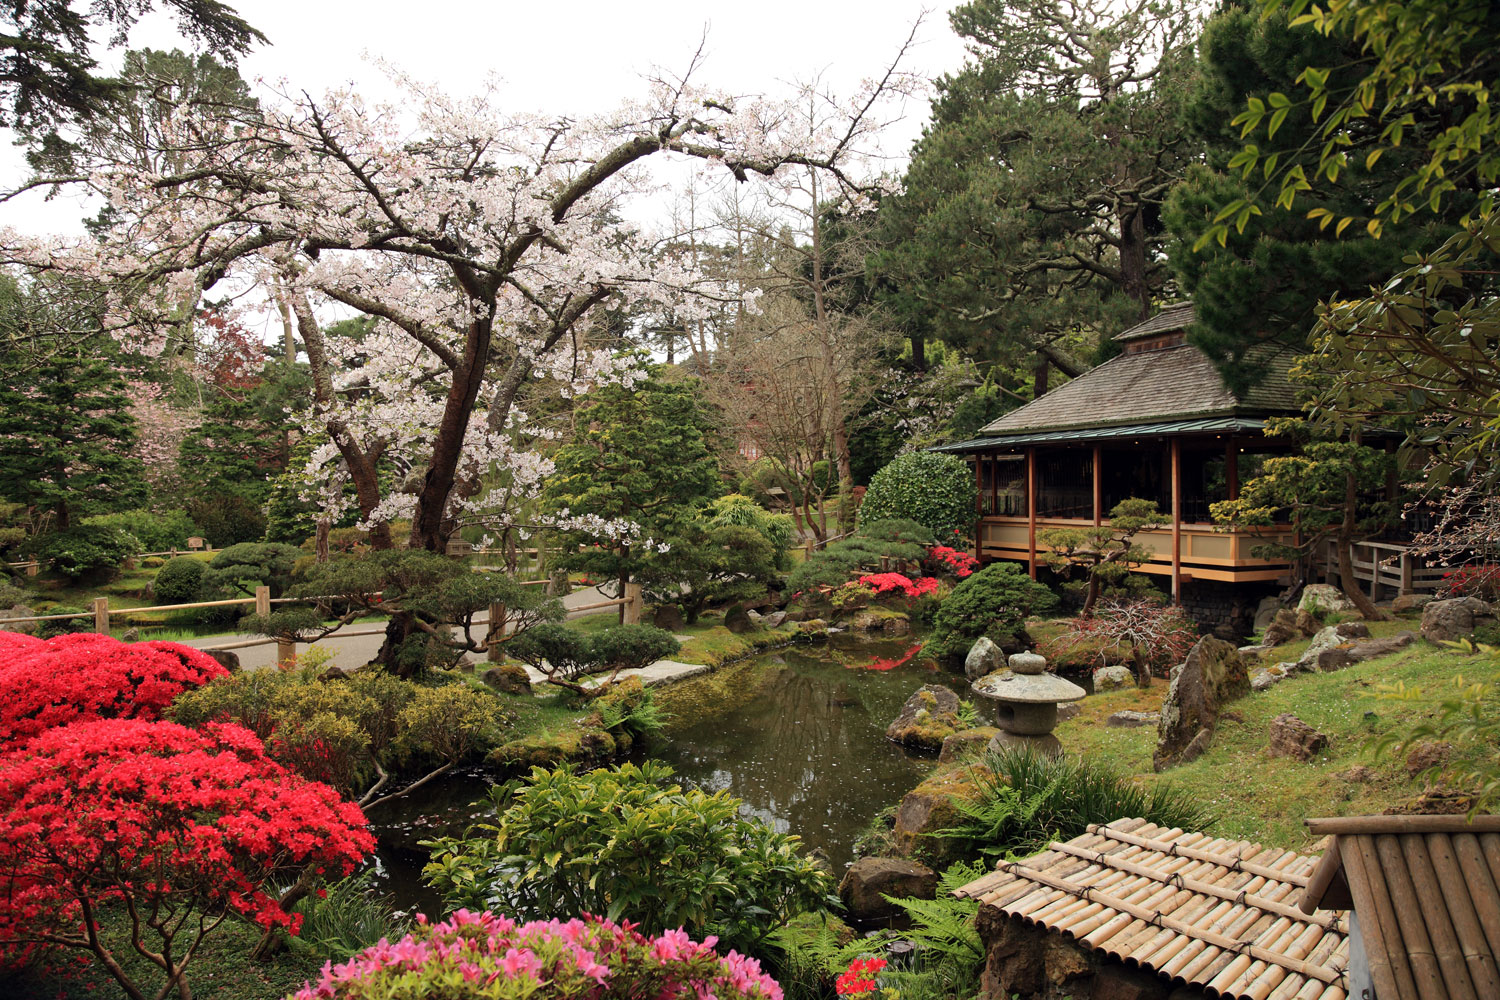 How to get into San Francisco museums for free - Japanese Tea Garden